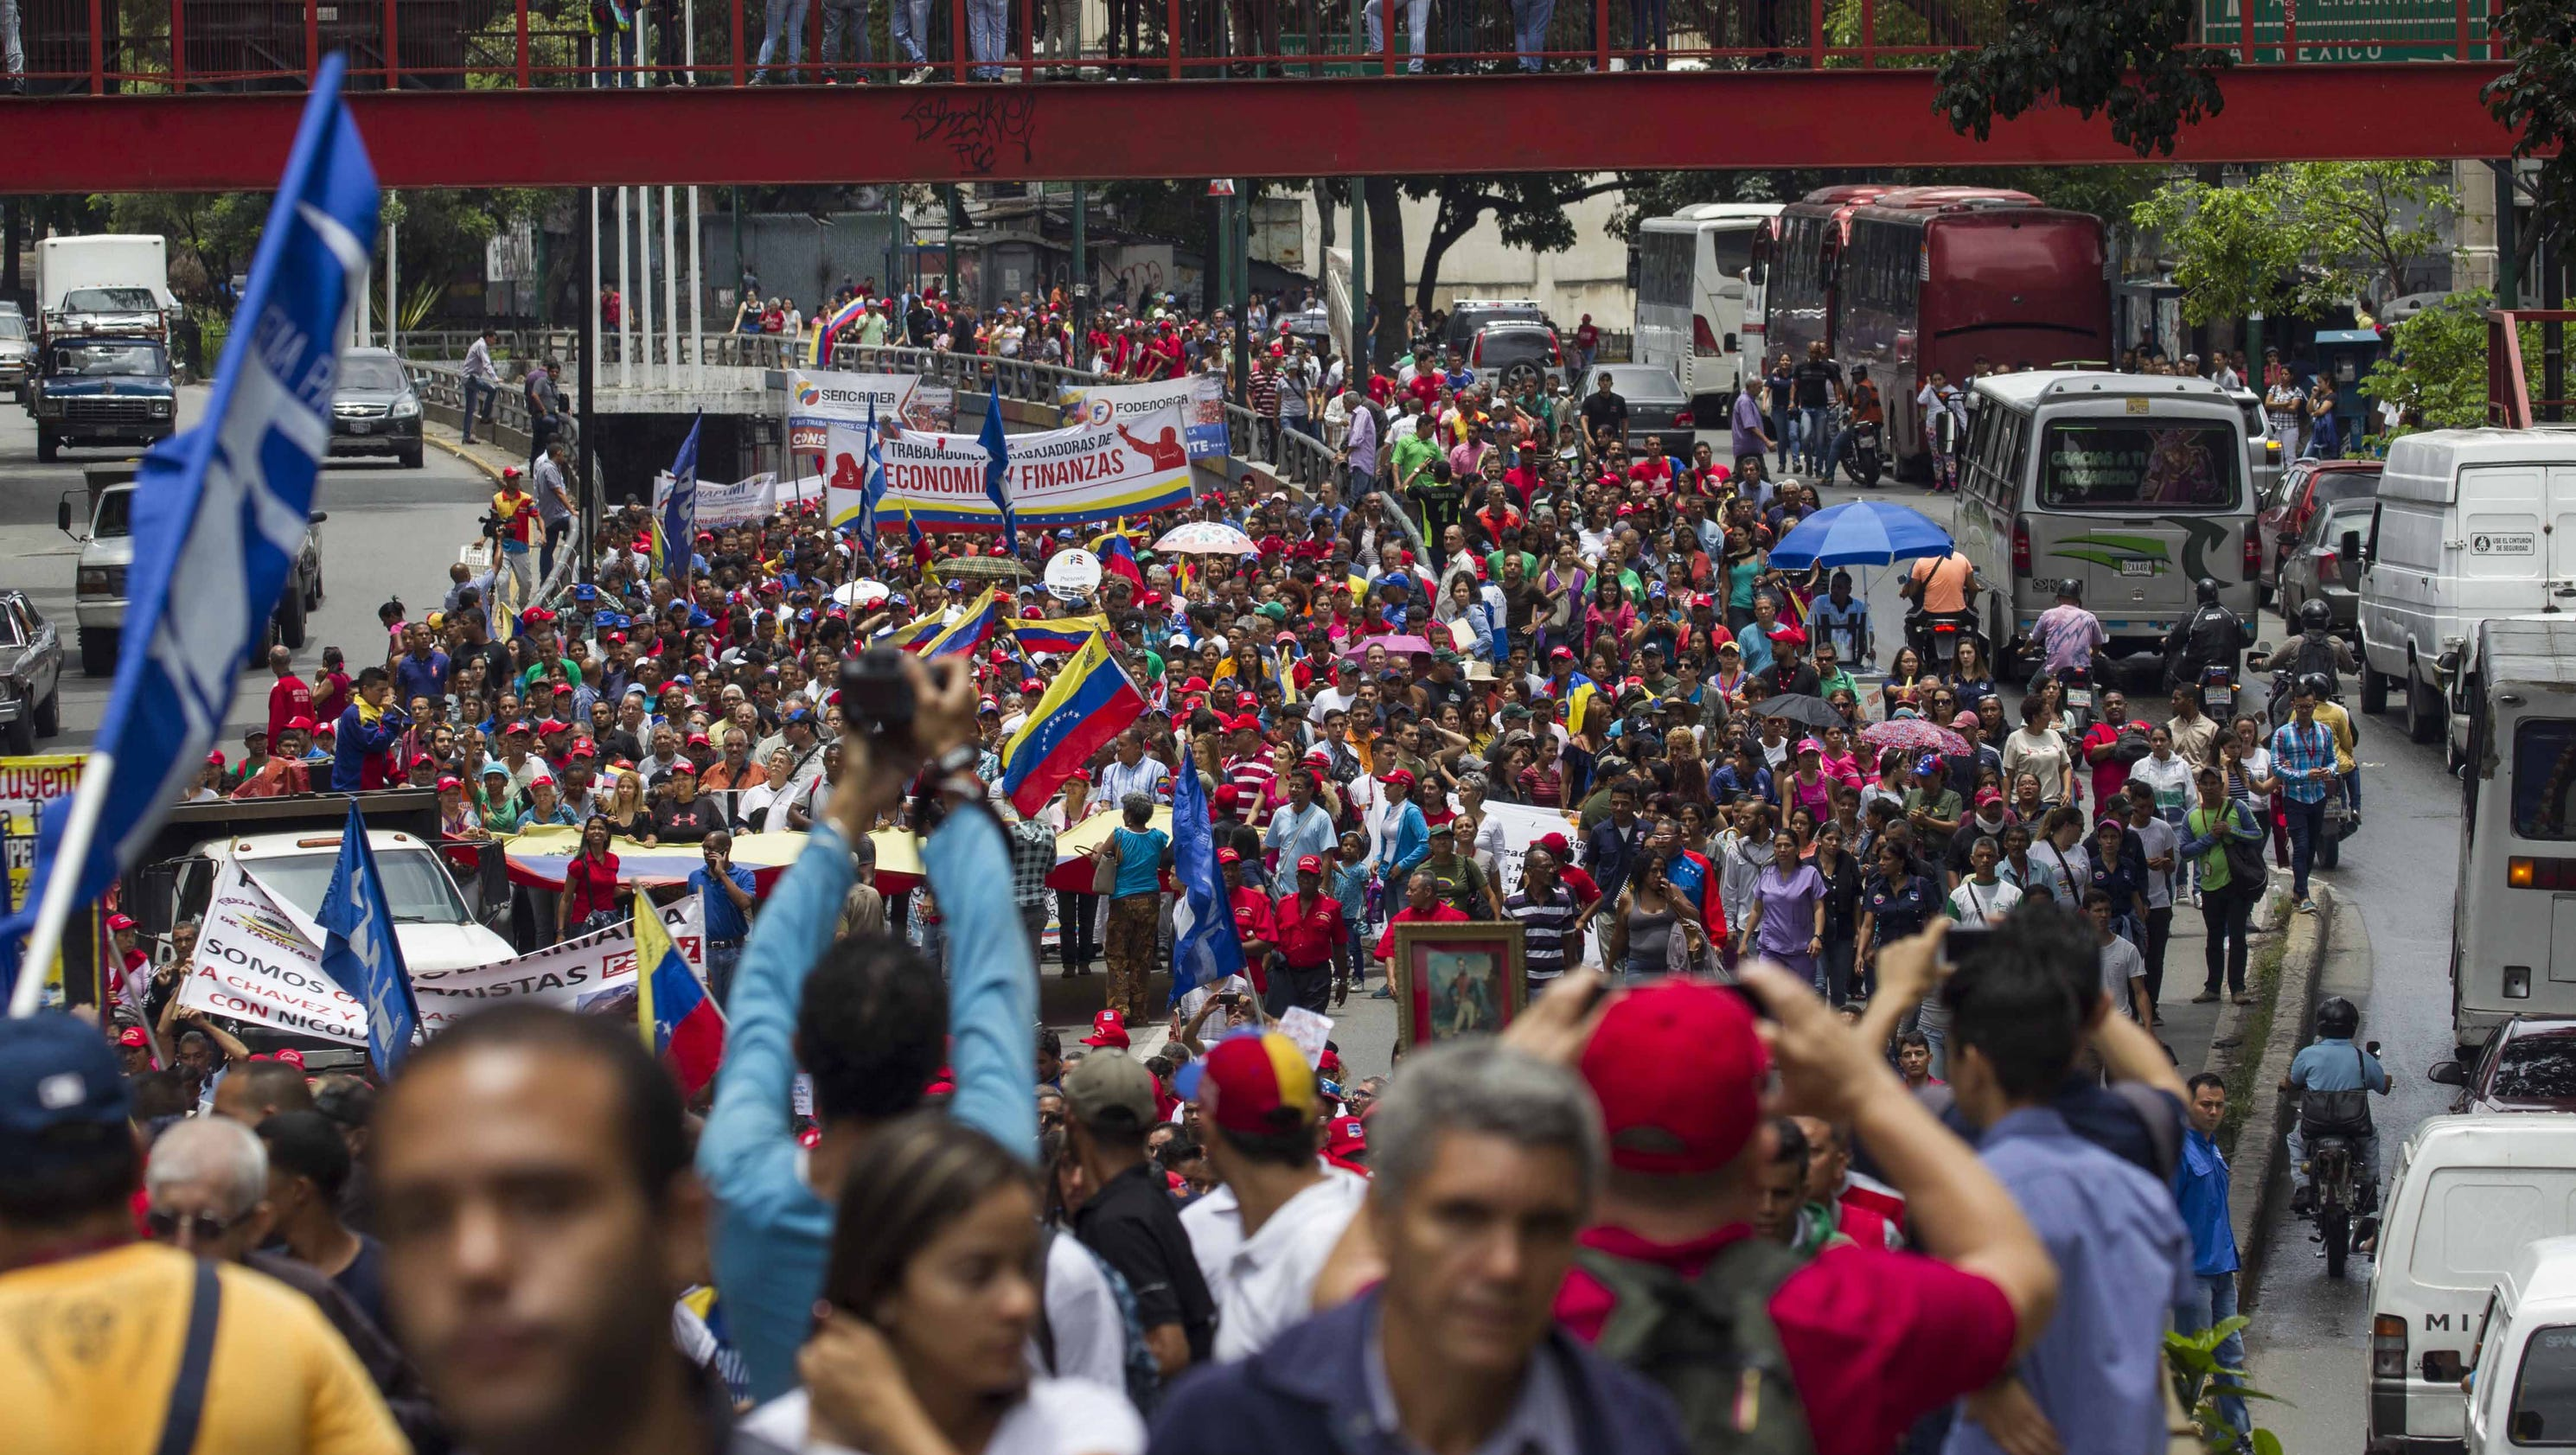 Trump's threat of 'military option' wins cheers from struggling Venezuelans